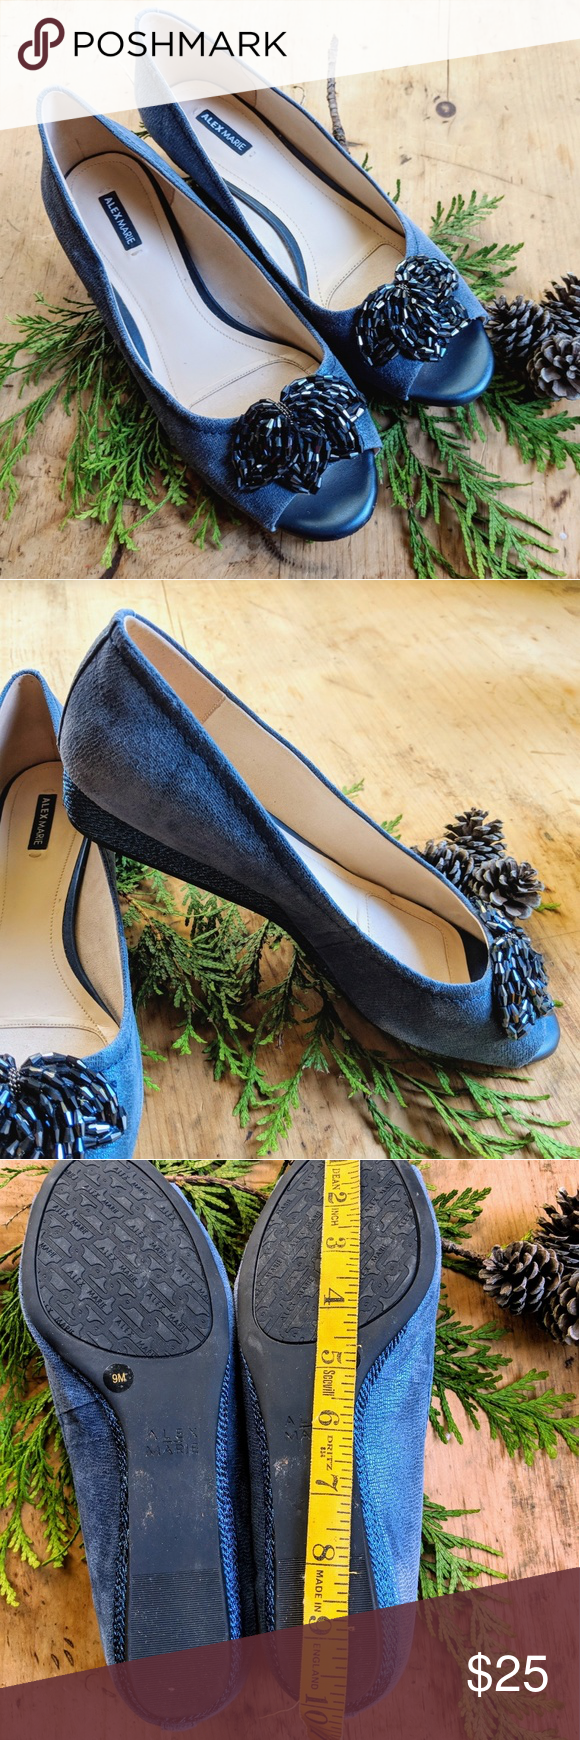 66aba85c10653 Alex Marie Blue Peep Toe Wedge Size 9M Dazzling blue wedges by Alex Marie.  Not